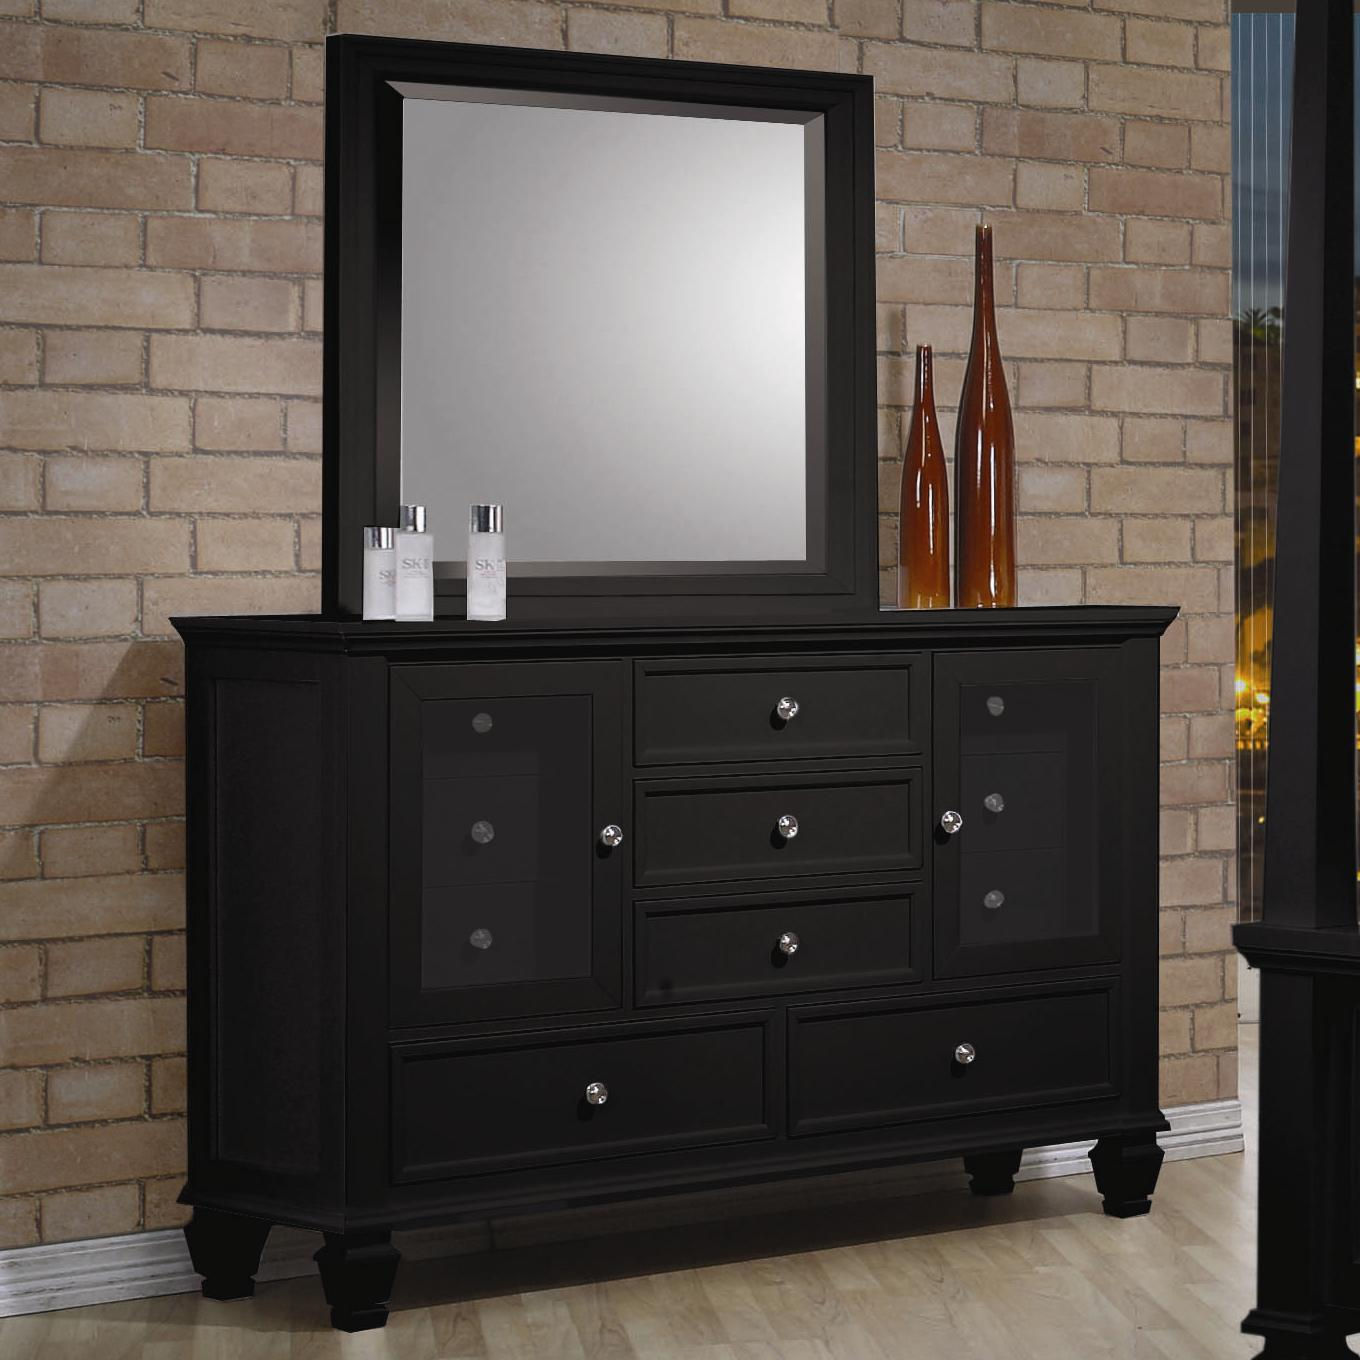 Sandy Beach Dresser and Mirror by Coaster at Prime Brothers Furniture